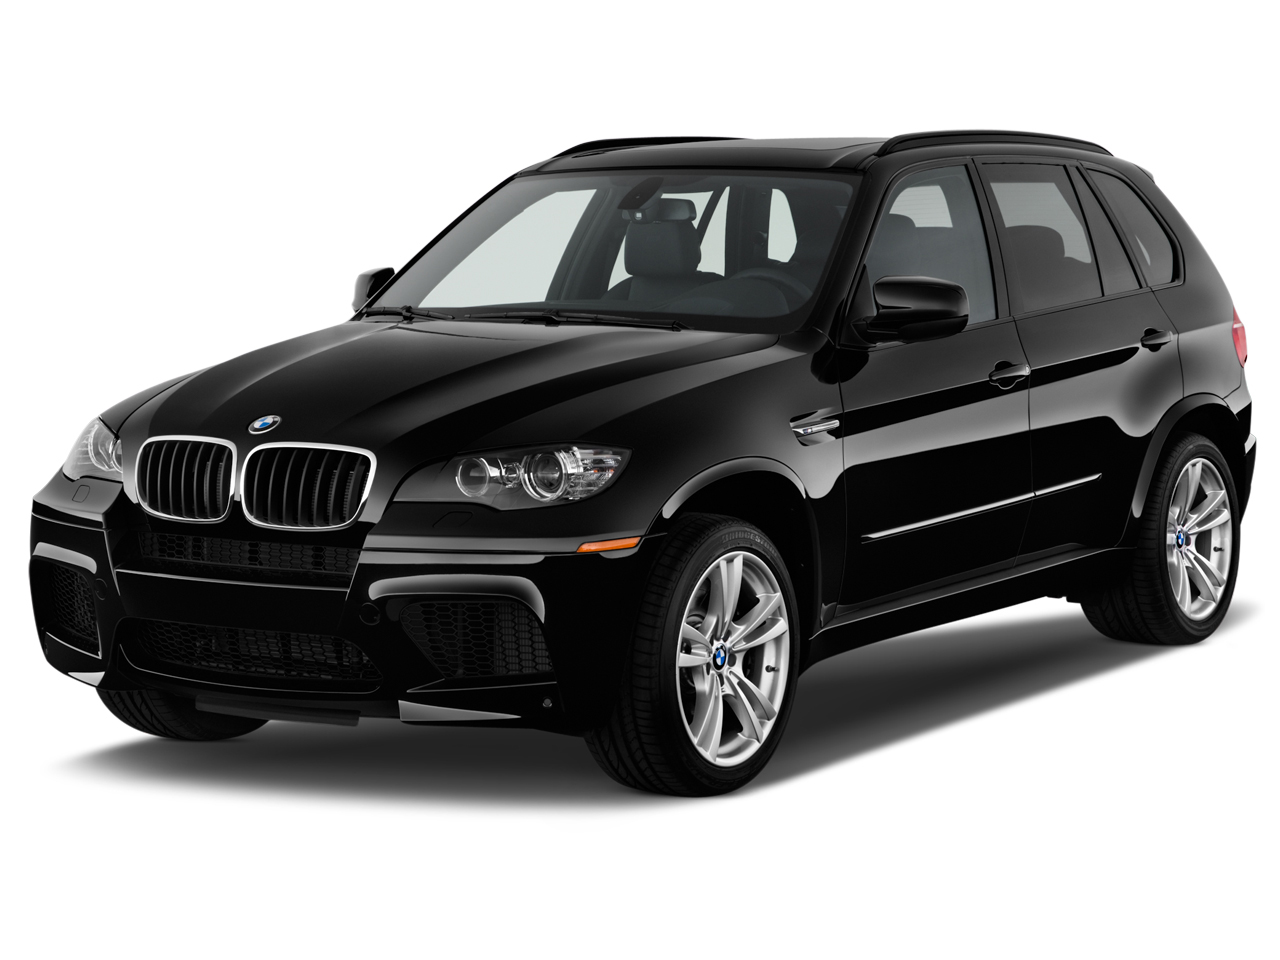 Chrysler Jeep Denver 2011 BMW X5 M Review, Ratings, Specs, Prices, and Photos ...